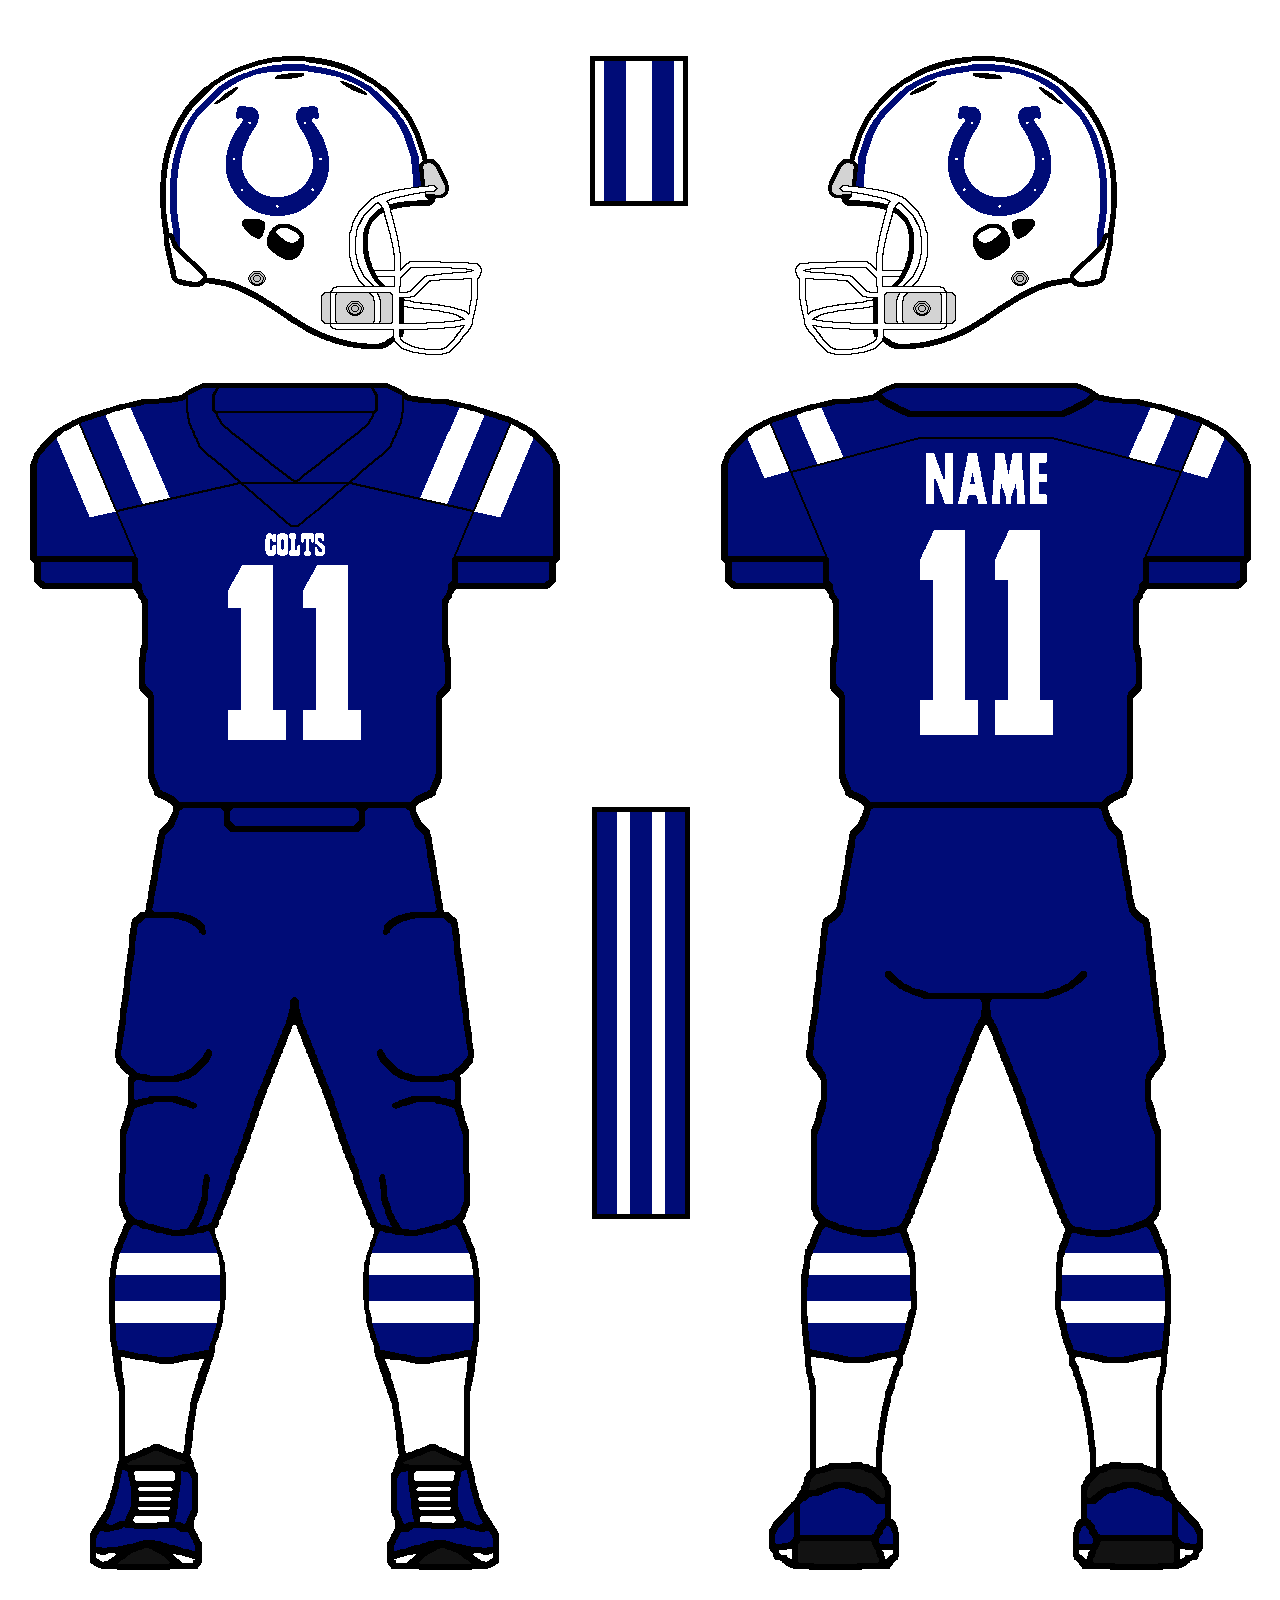 COLTS_ALTERNATE_1.png